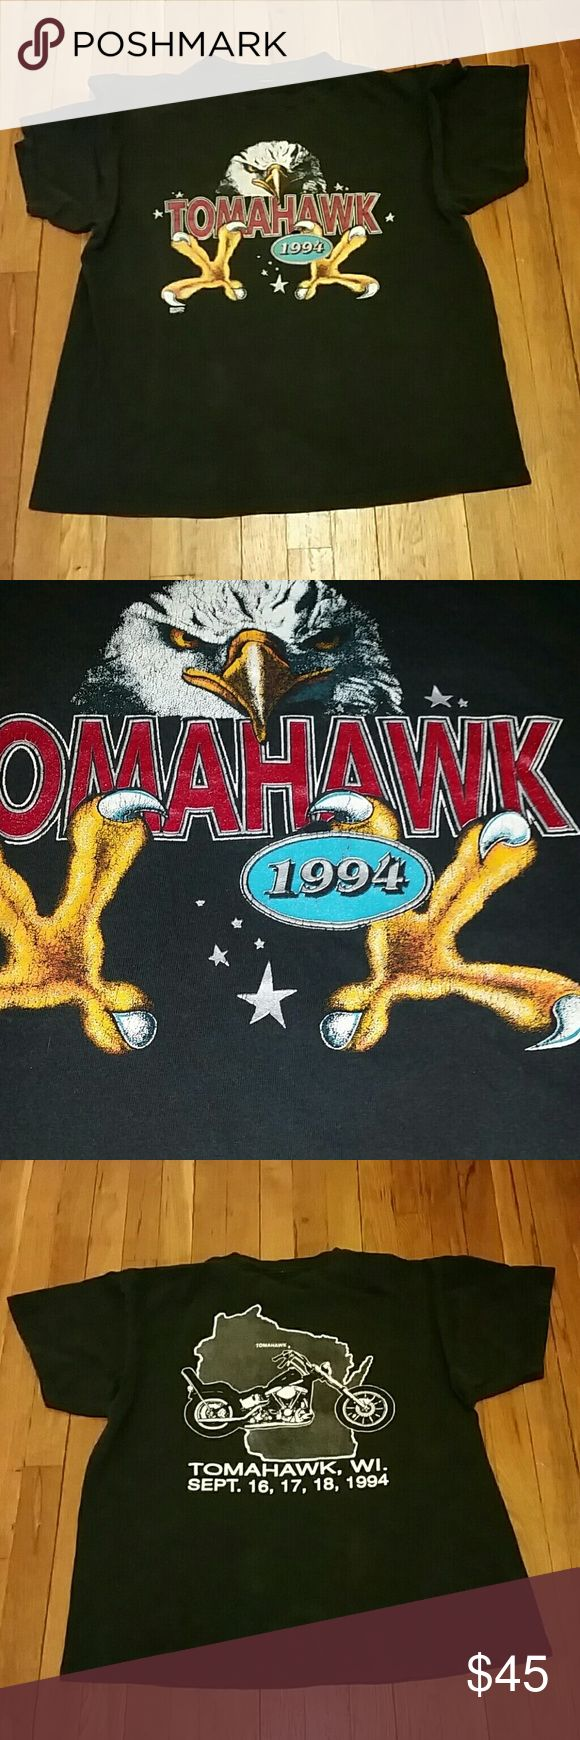 TOMAHAWK 1994 T-shirt Size men's xl/ Ladies xxl MID FLORIDA SPORTS . Tiny holes near top eagle claws. MID FLORIDA SPORTS Shirts Tees - Short Sleeve